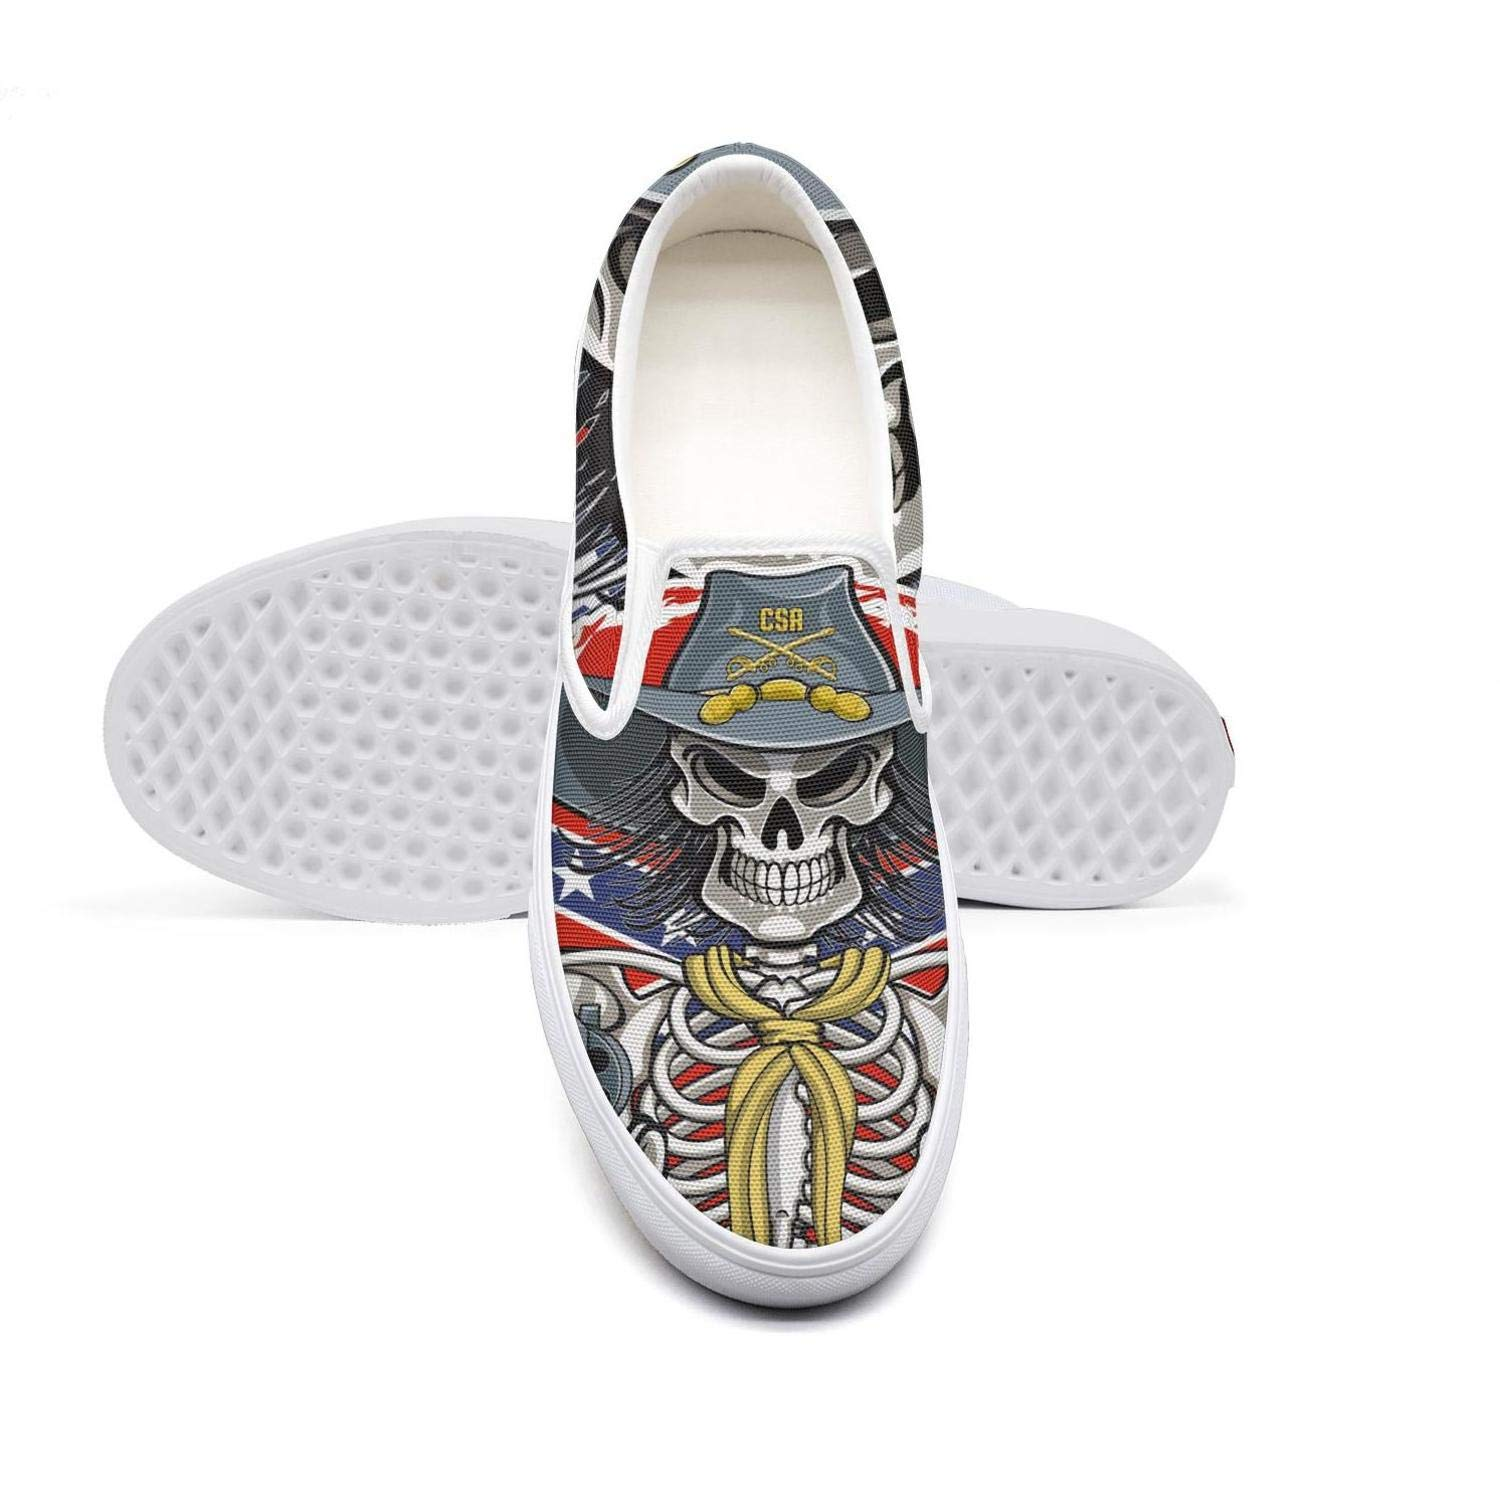 KJGDFS America USA Flag Painted Skull Walking Shoes Low top Slip-on for boy